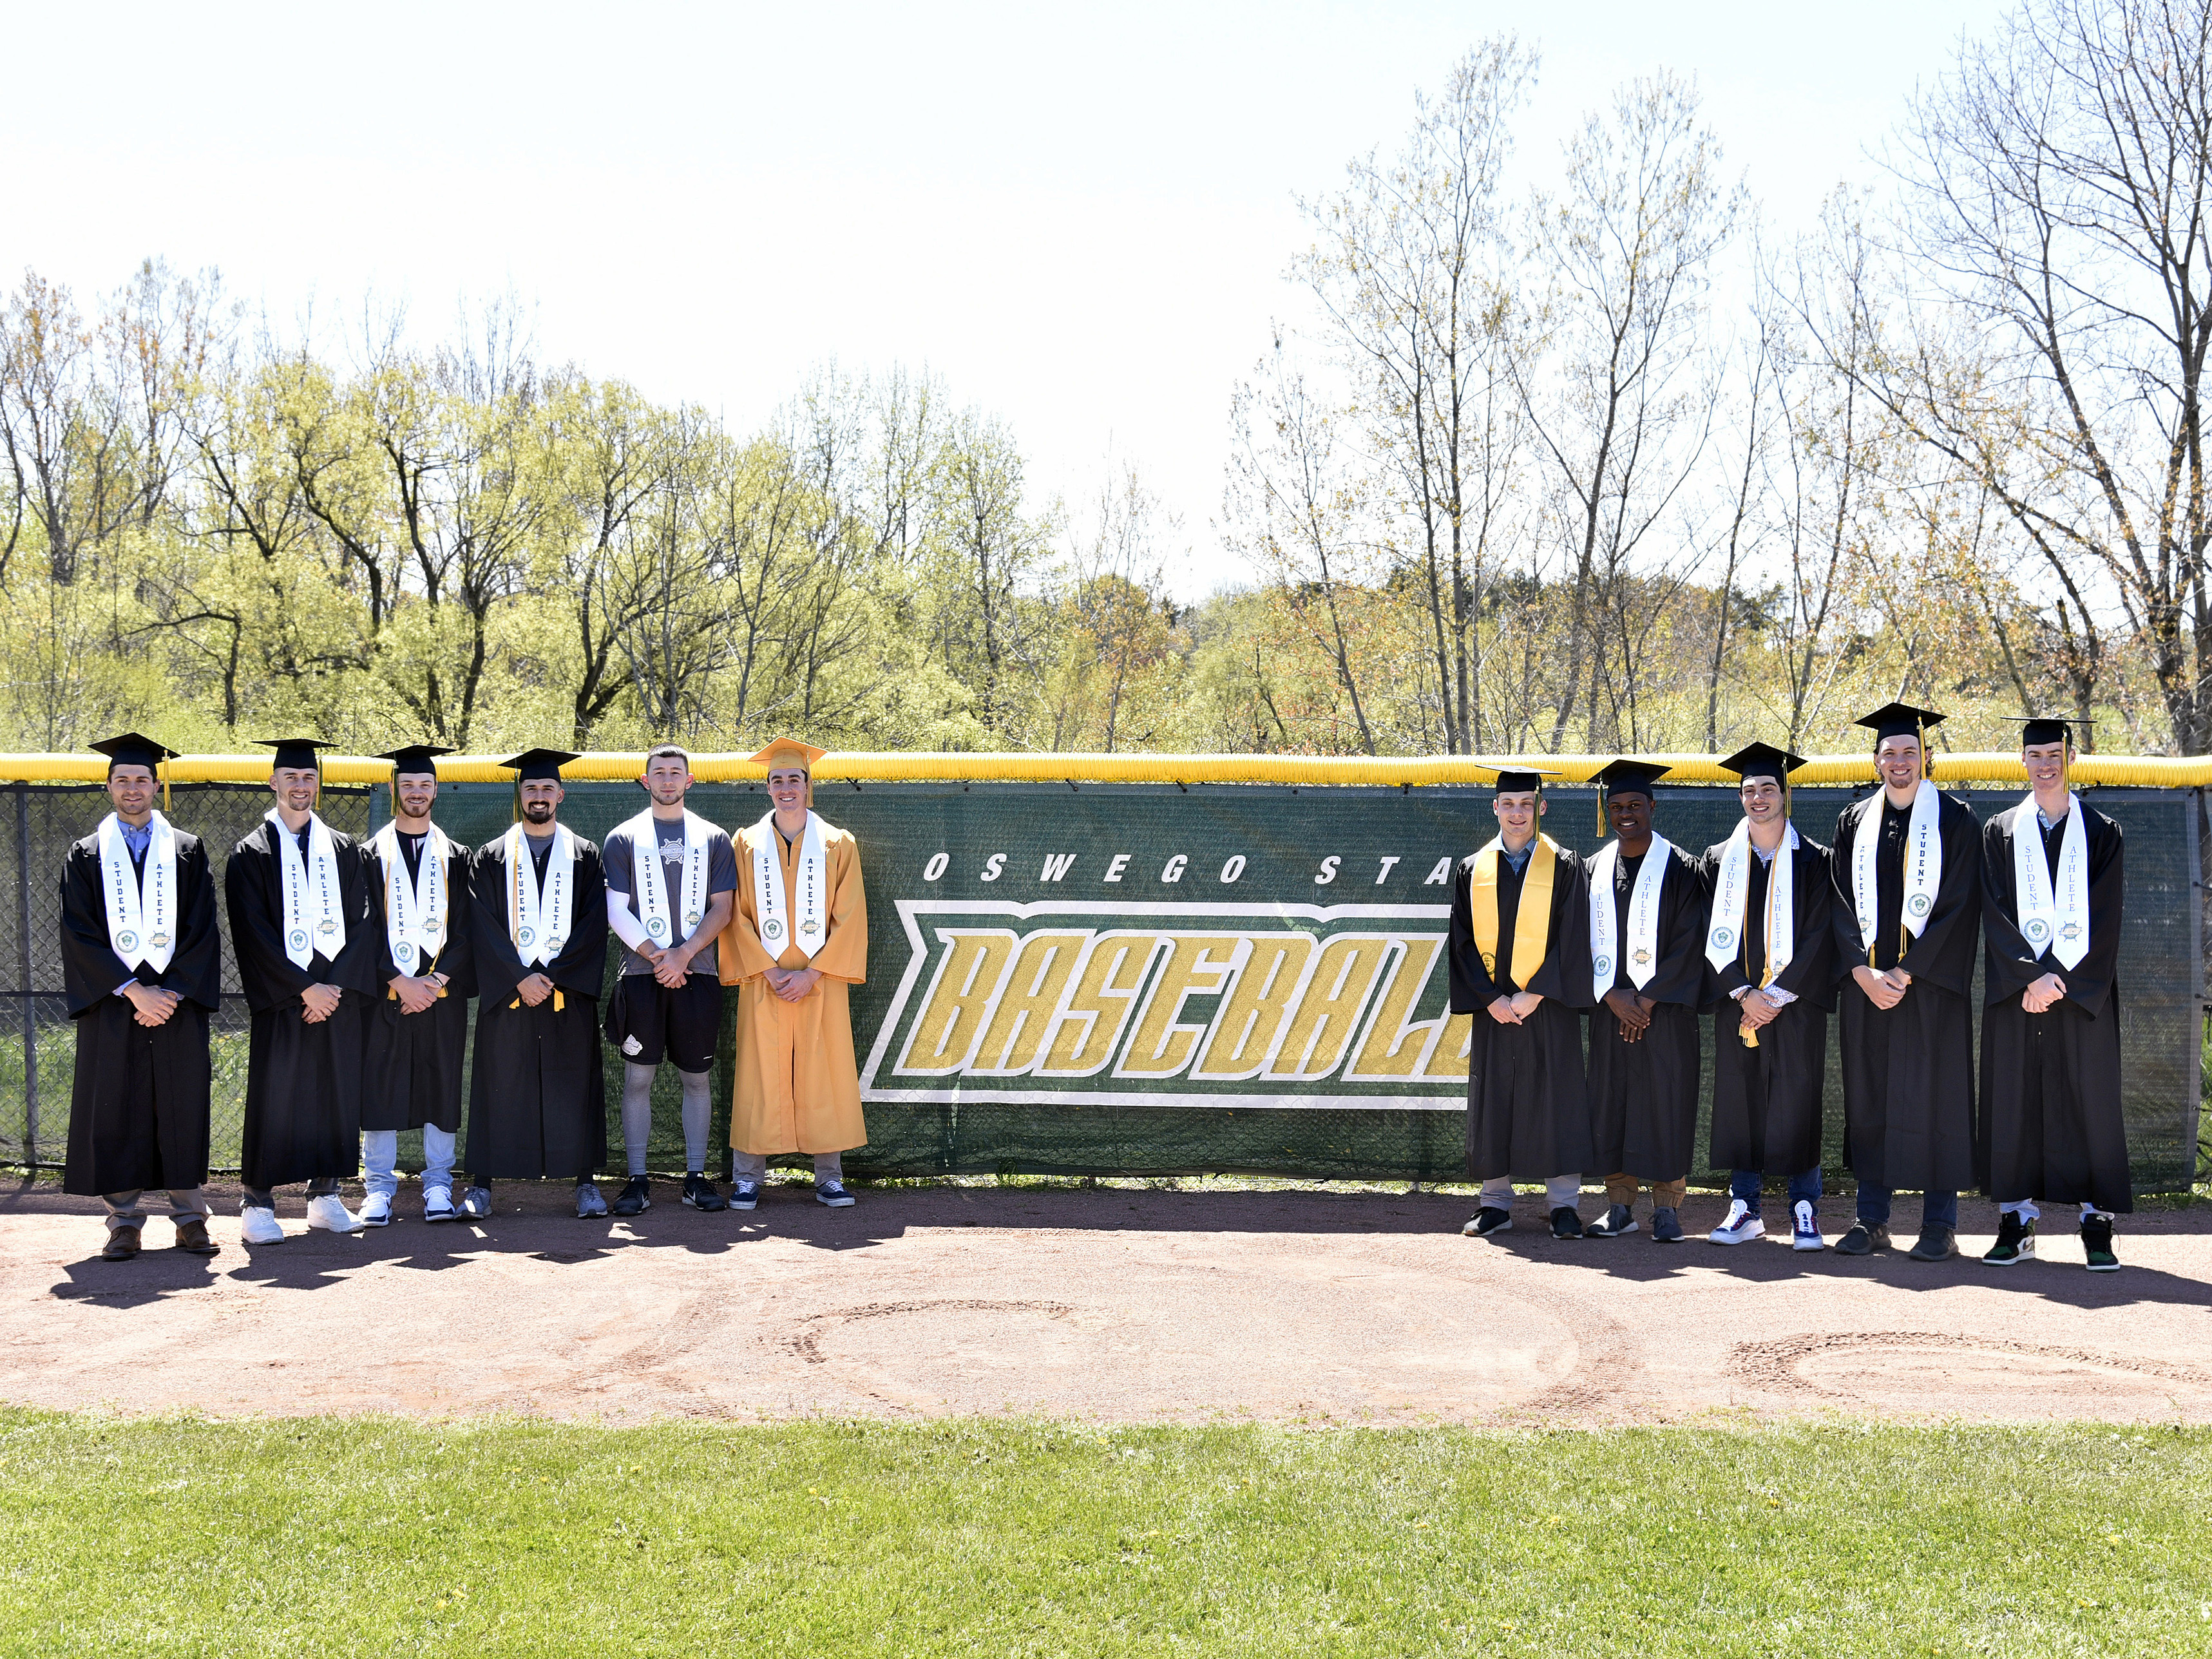 The nationally ranked Laker men's baseball team graduated several seniors swept Oneonta 8-2 and 11-4 to advance in the SUNYAC championship series on Commencement weekend.